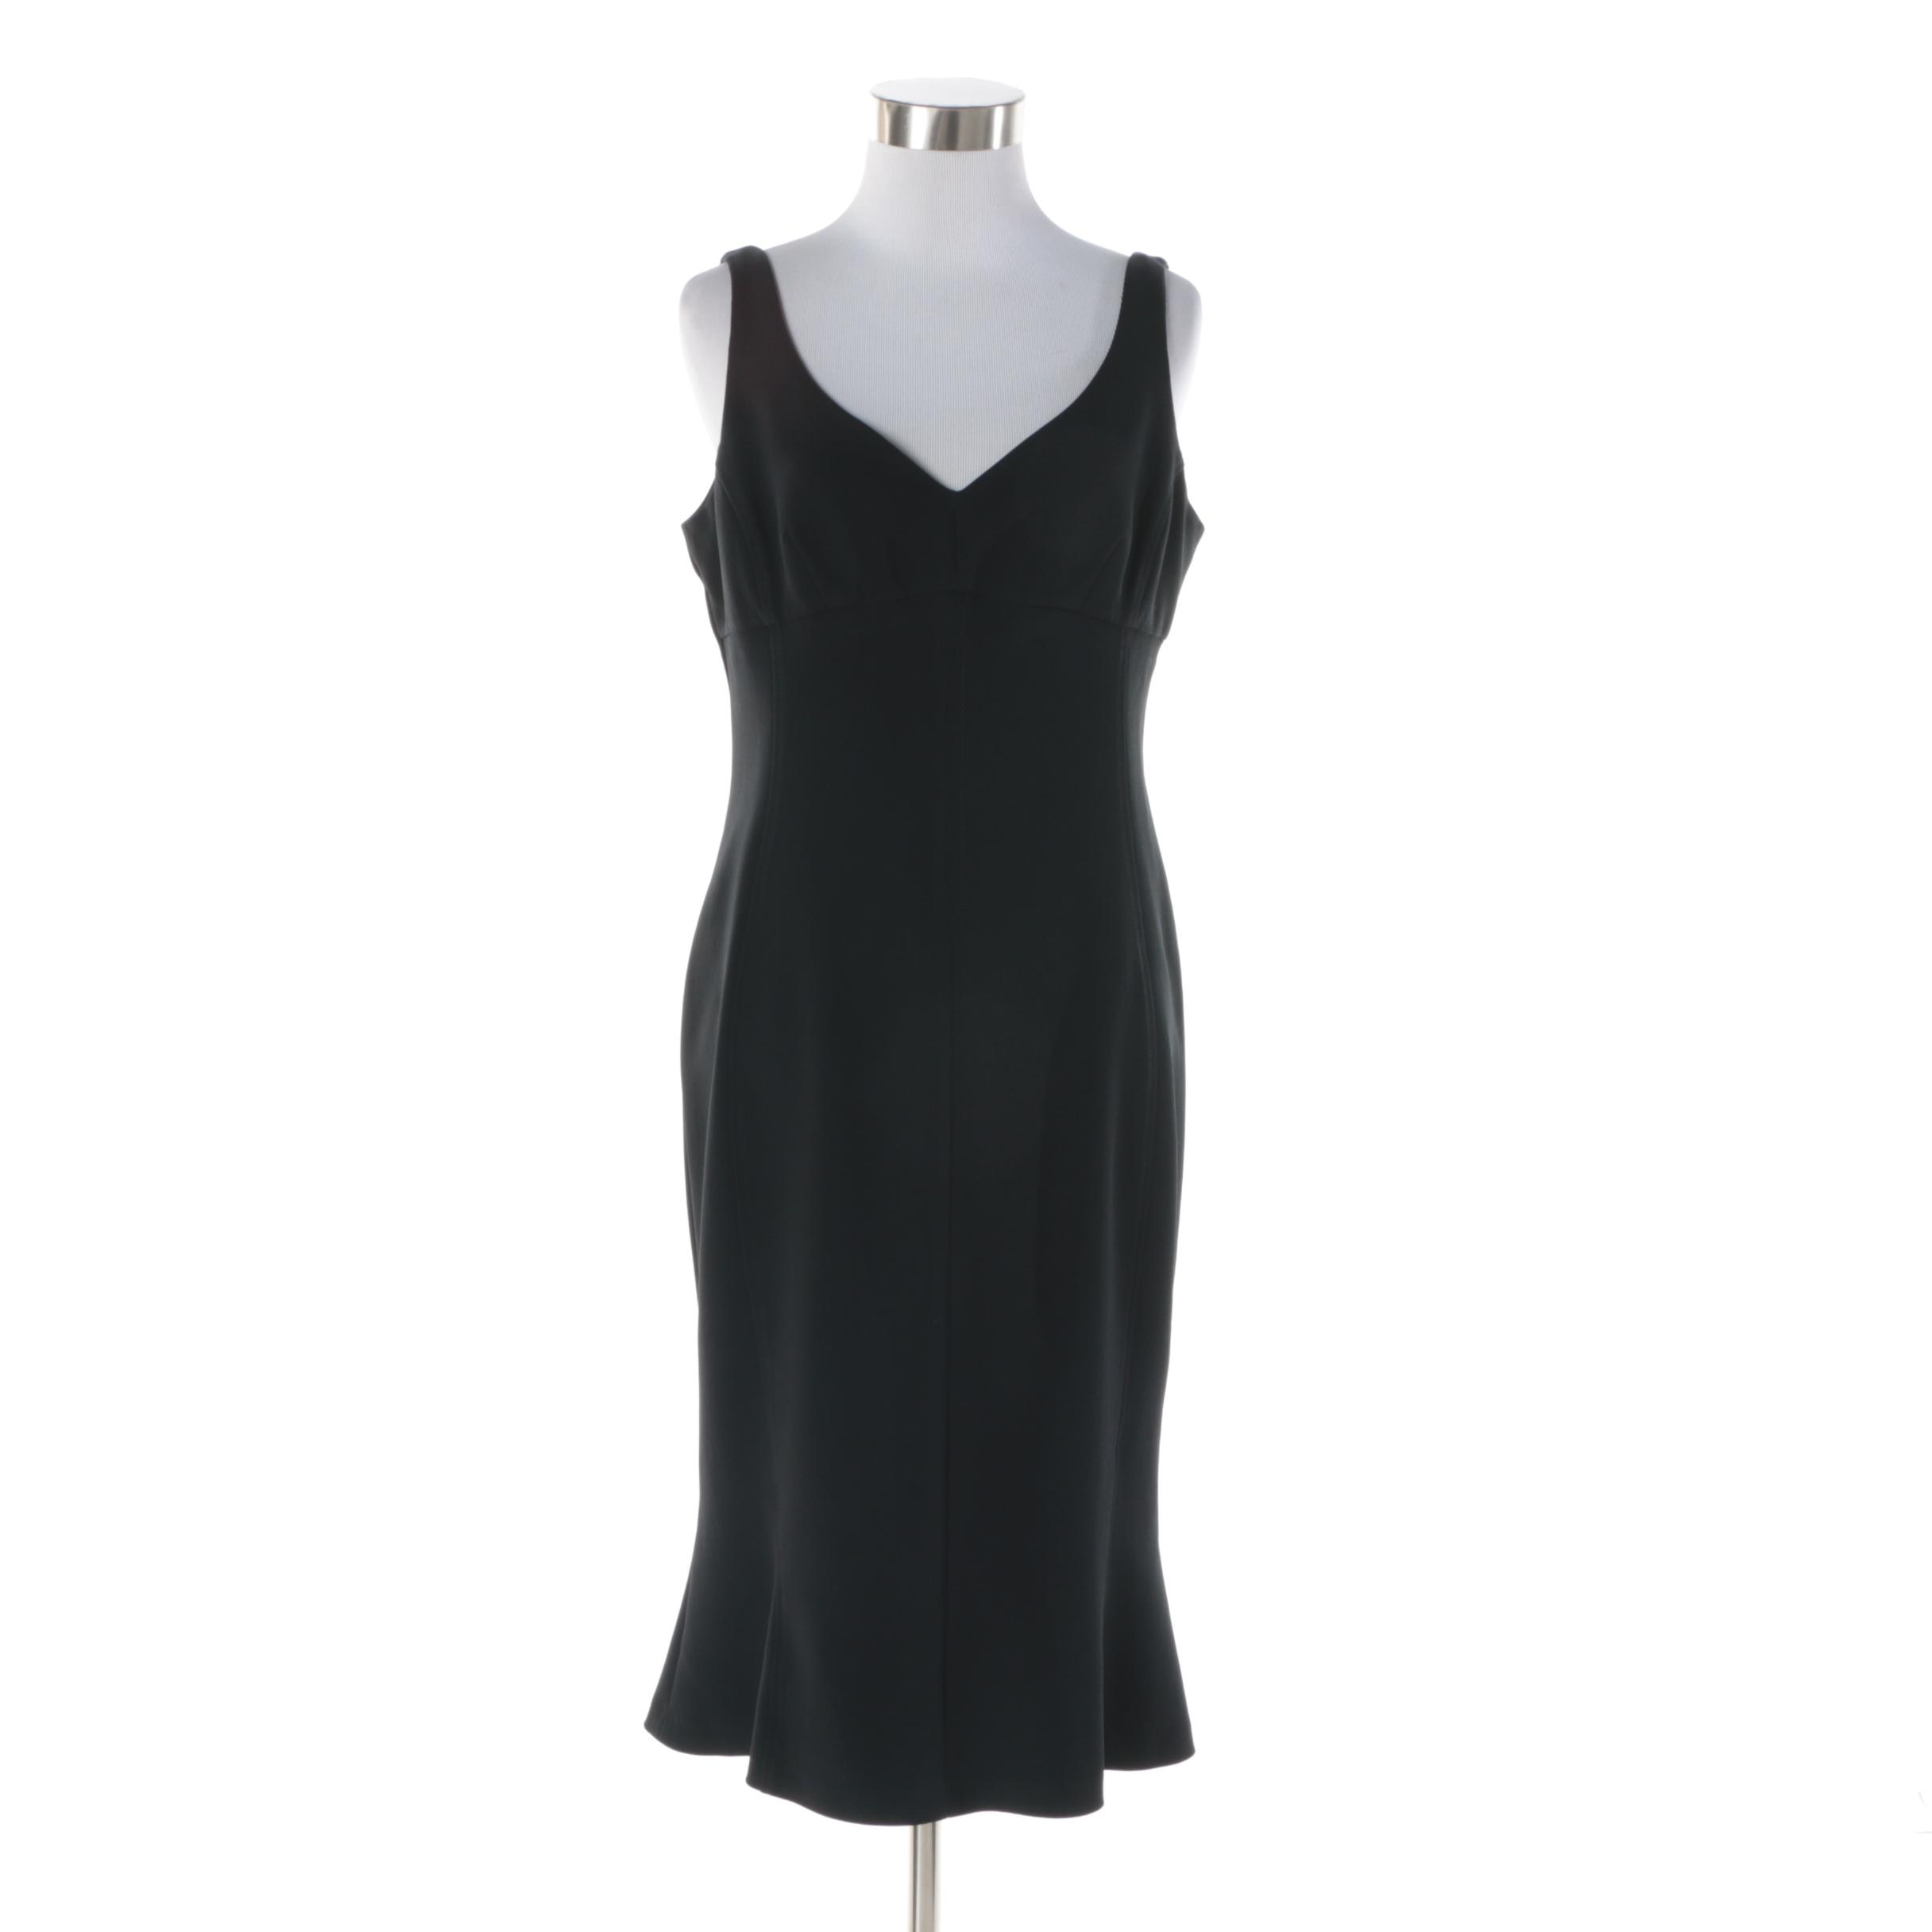 Versace Jeans Couture Black Sleeveless Cocktail Dress